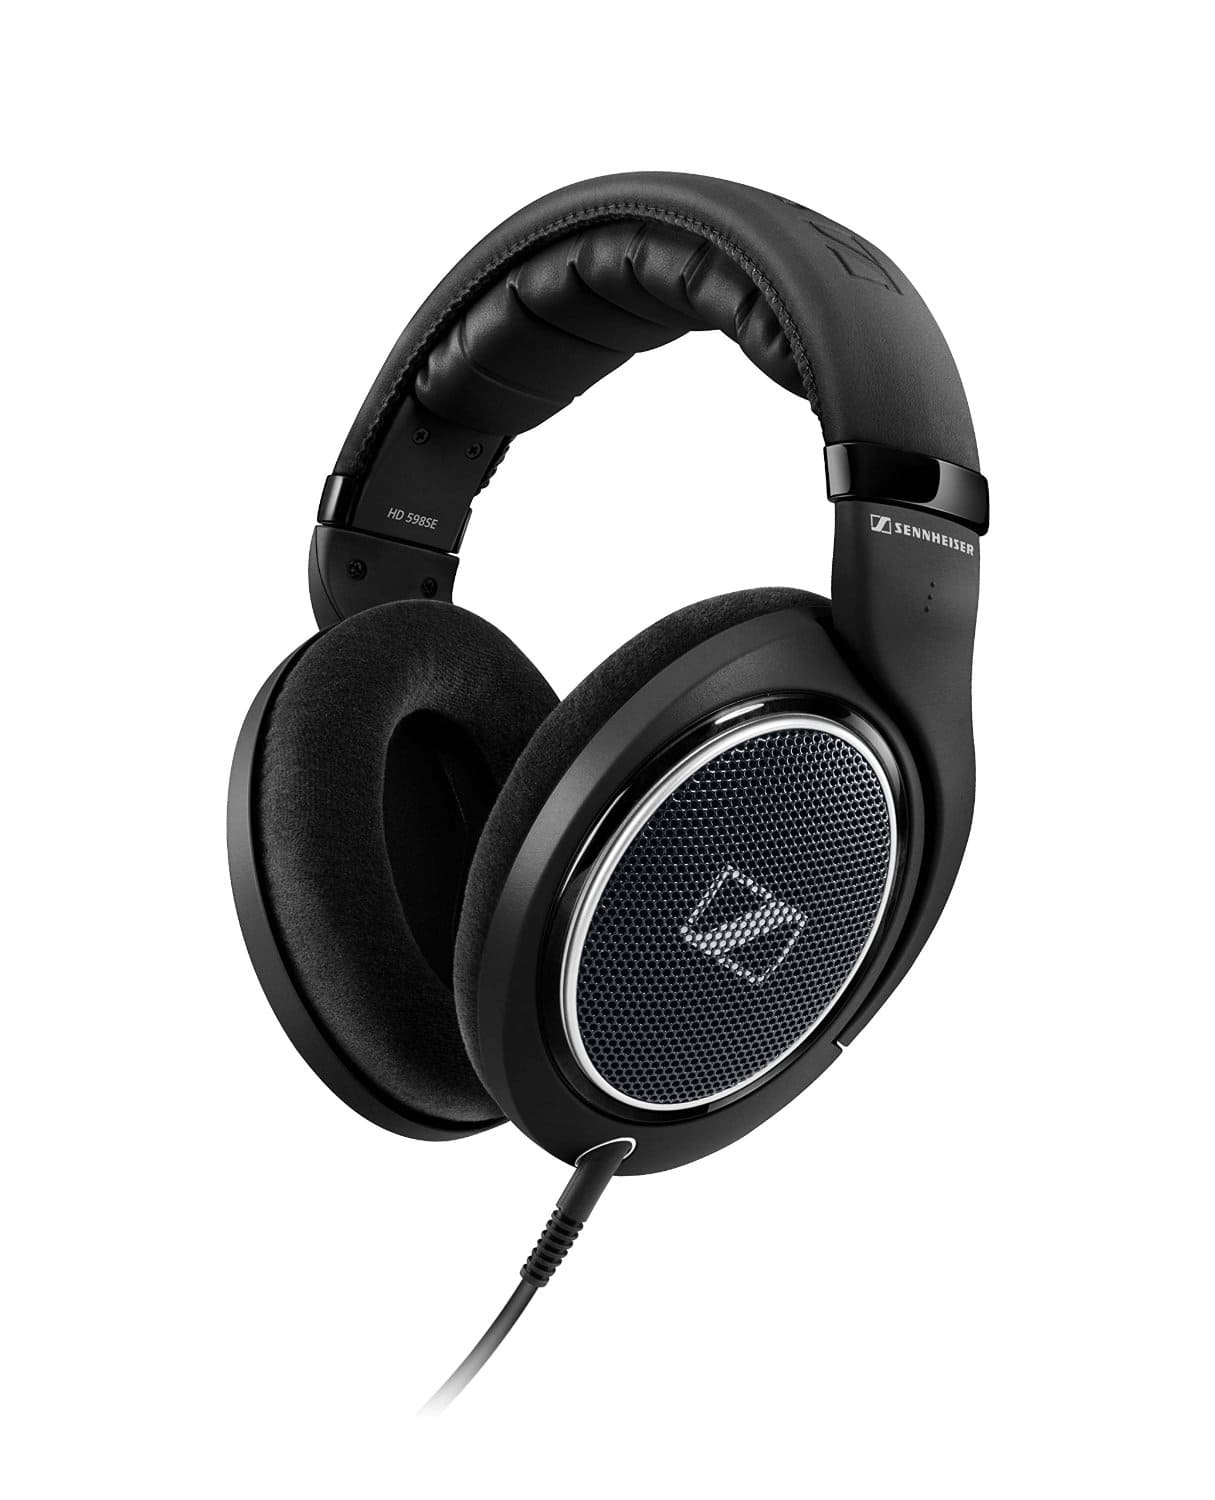 Amazon Prime Day Sale: Sennheiser HD 598 Special Edition Over-Ear Headphones - Black for $109.99 before tax